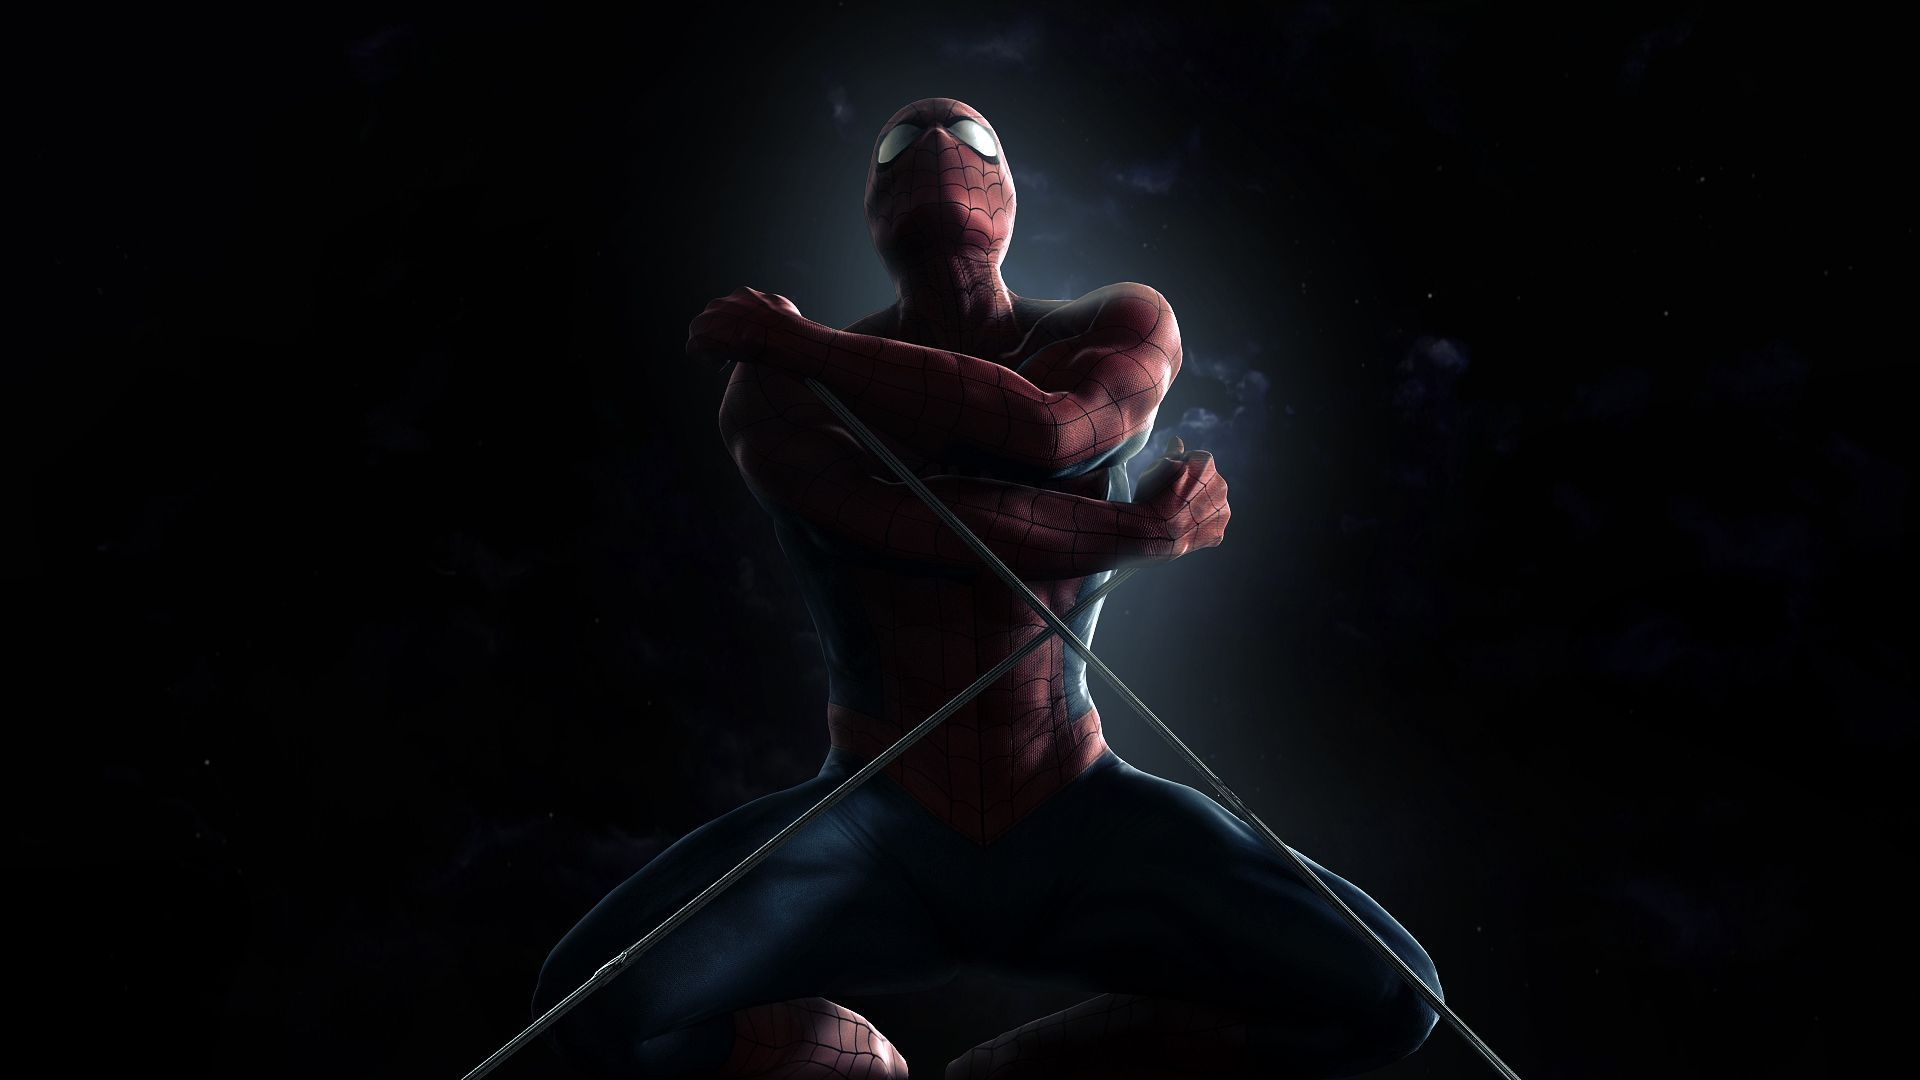 Spider Man Wallpapers Hd Full Hd Pictures